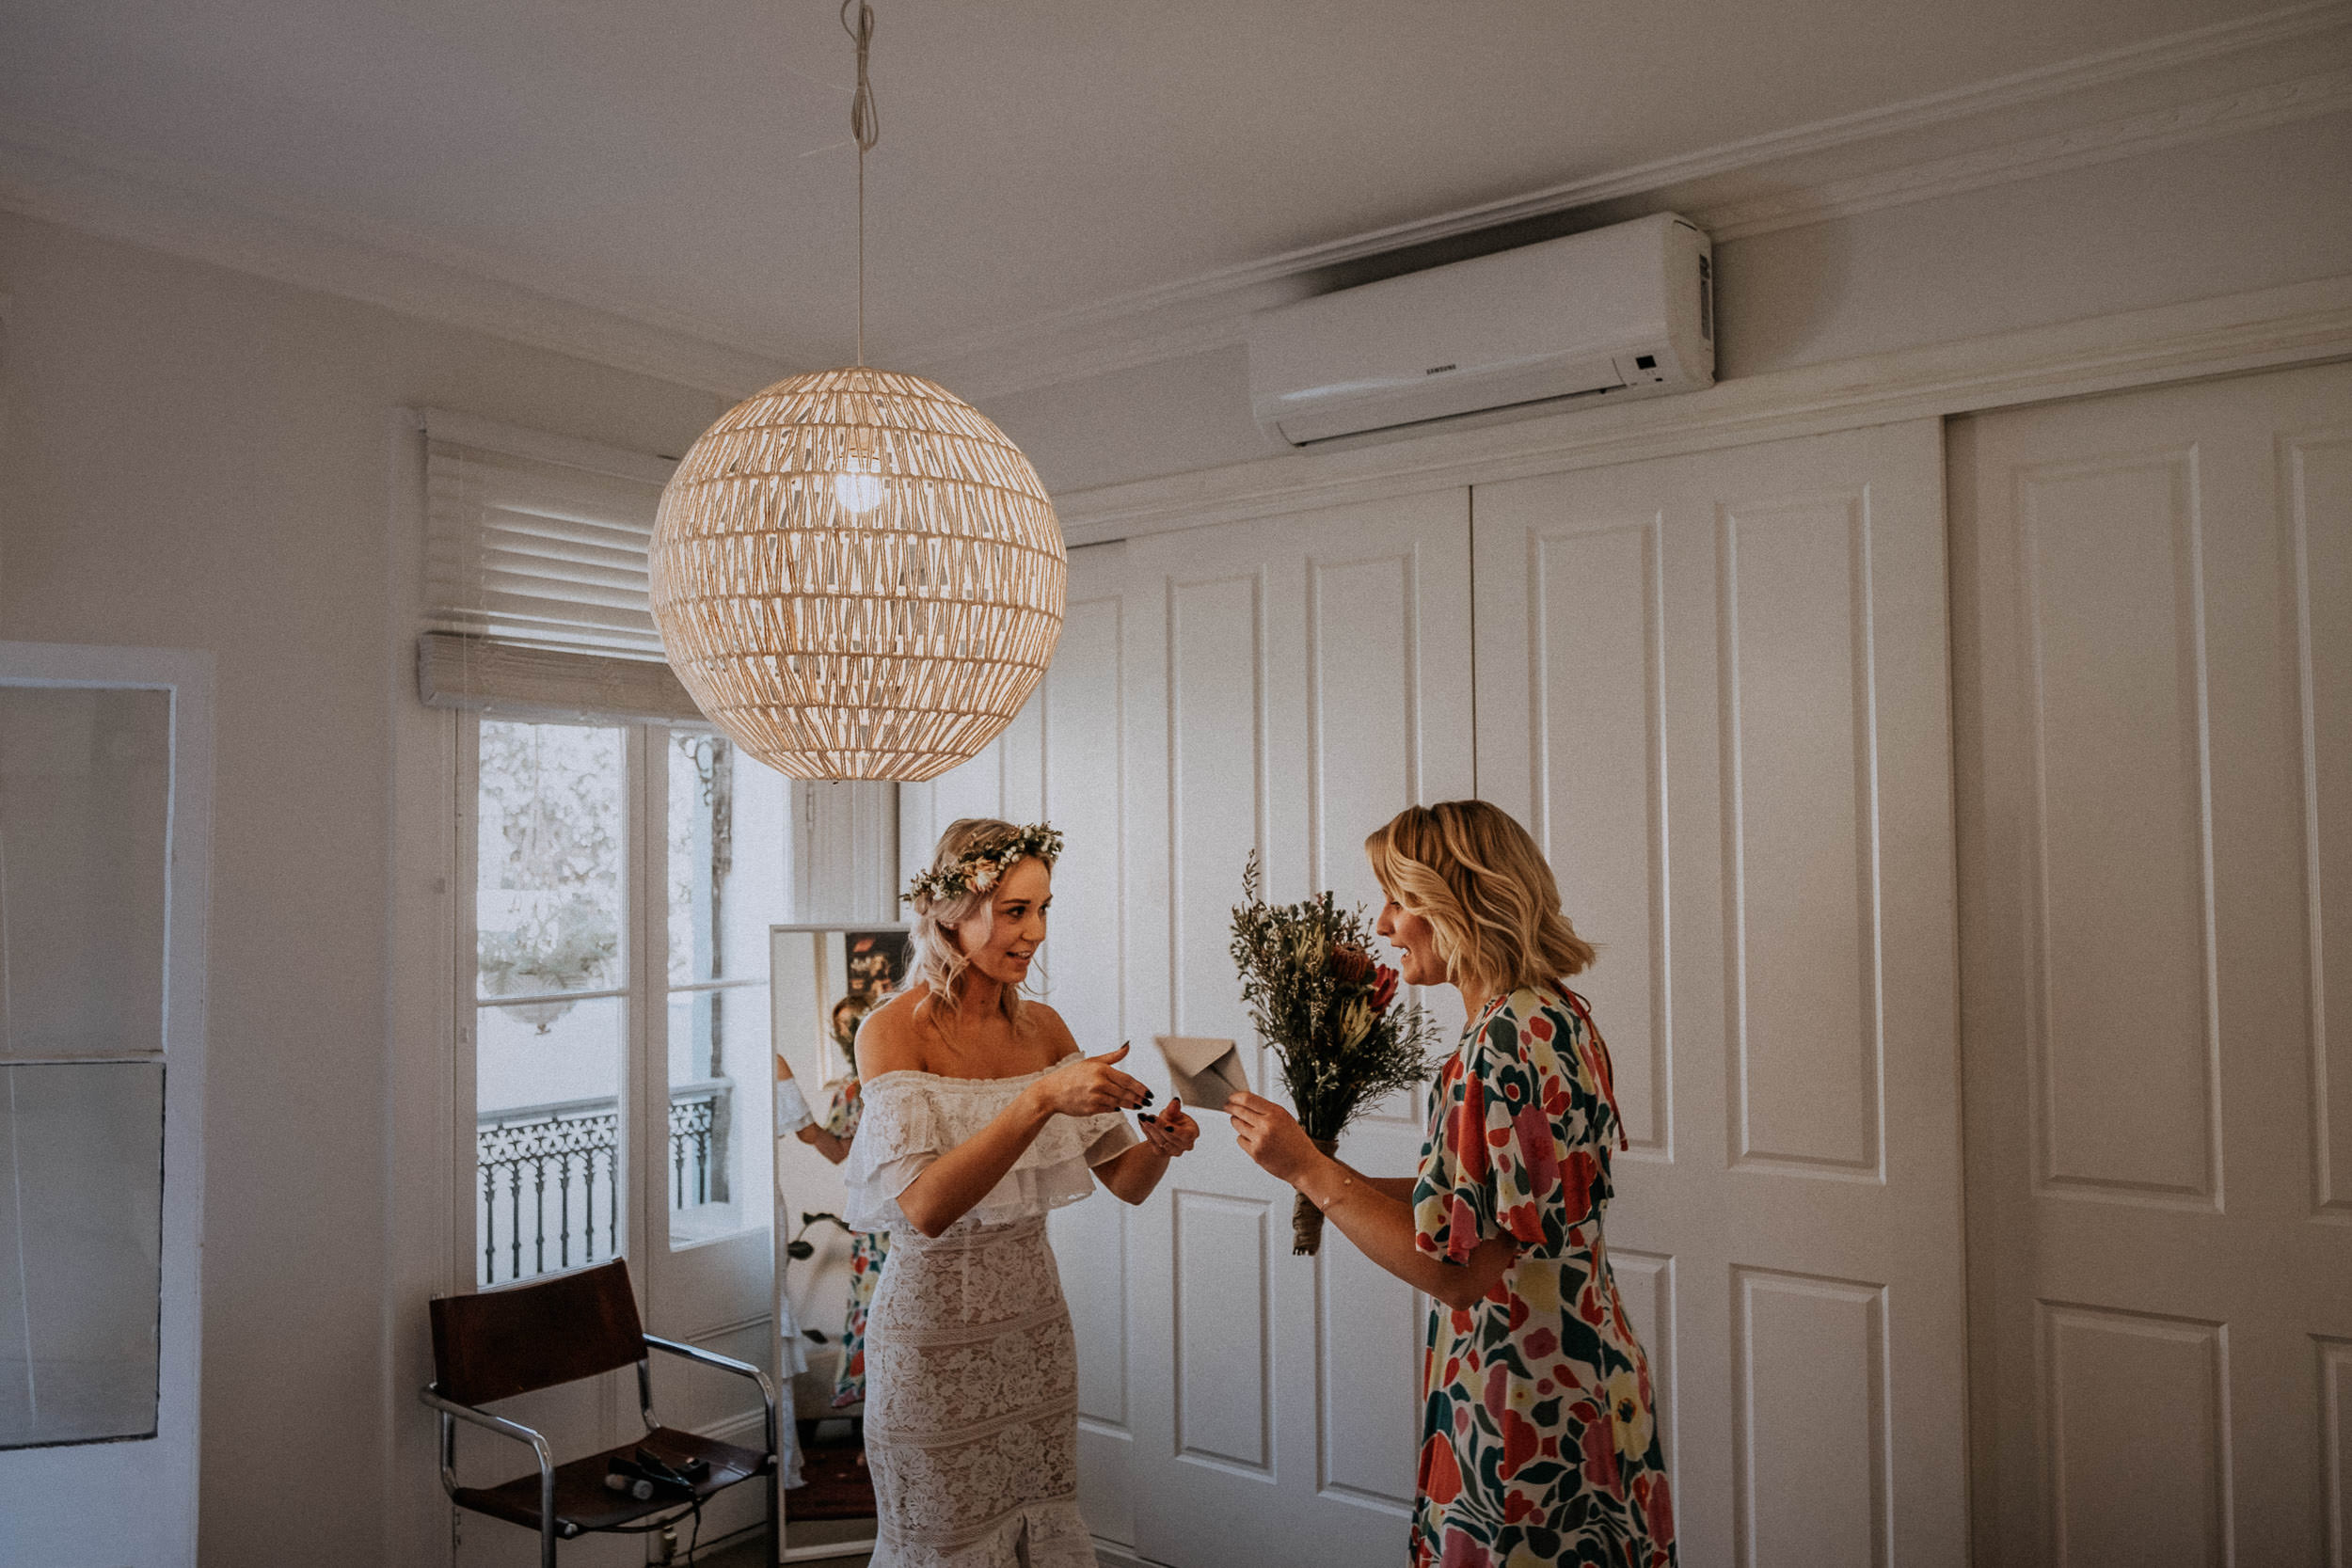 kings _ thieves - beth _ corey backyard airbnb elopement sydney - submission -28.jpg